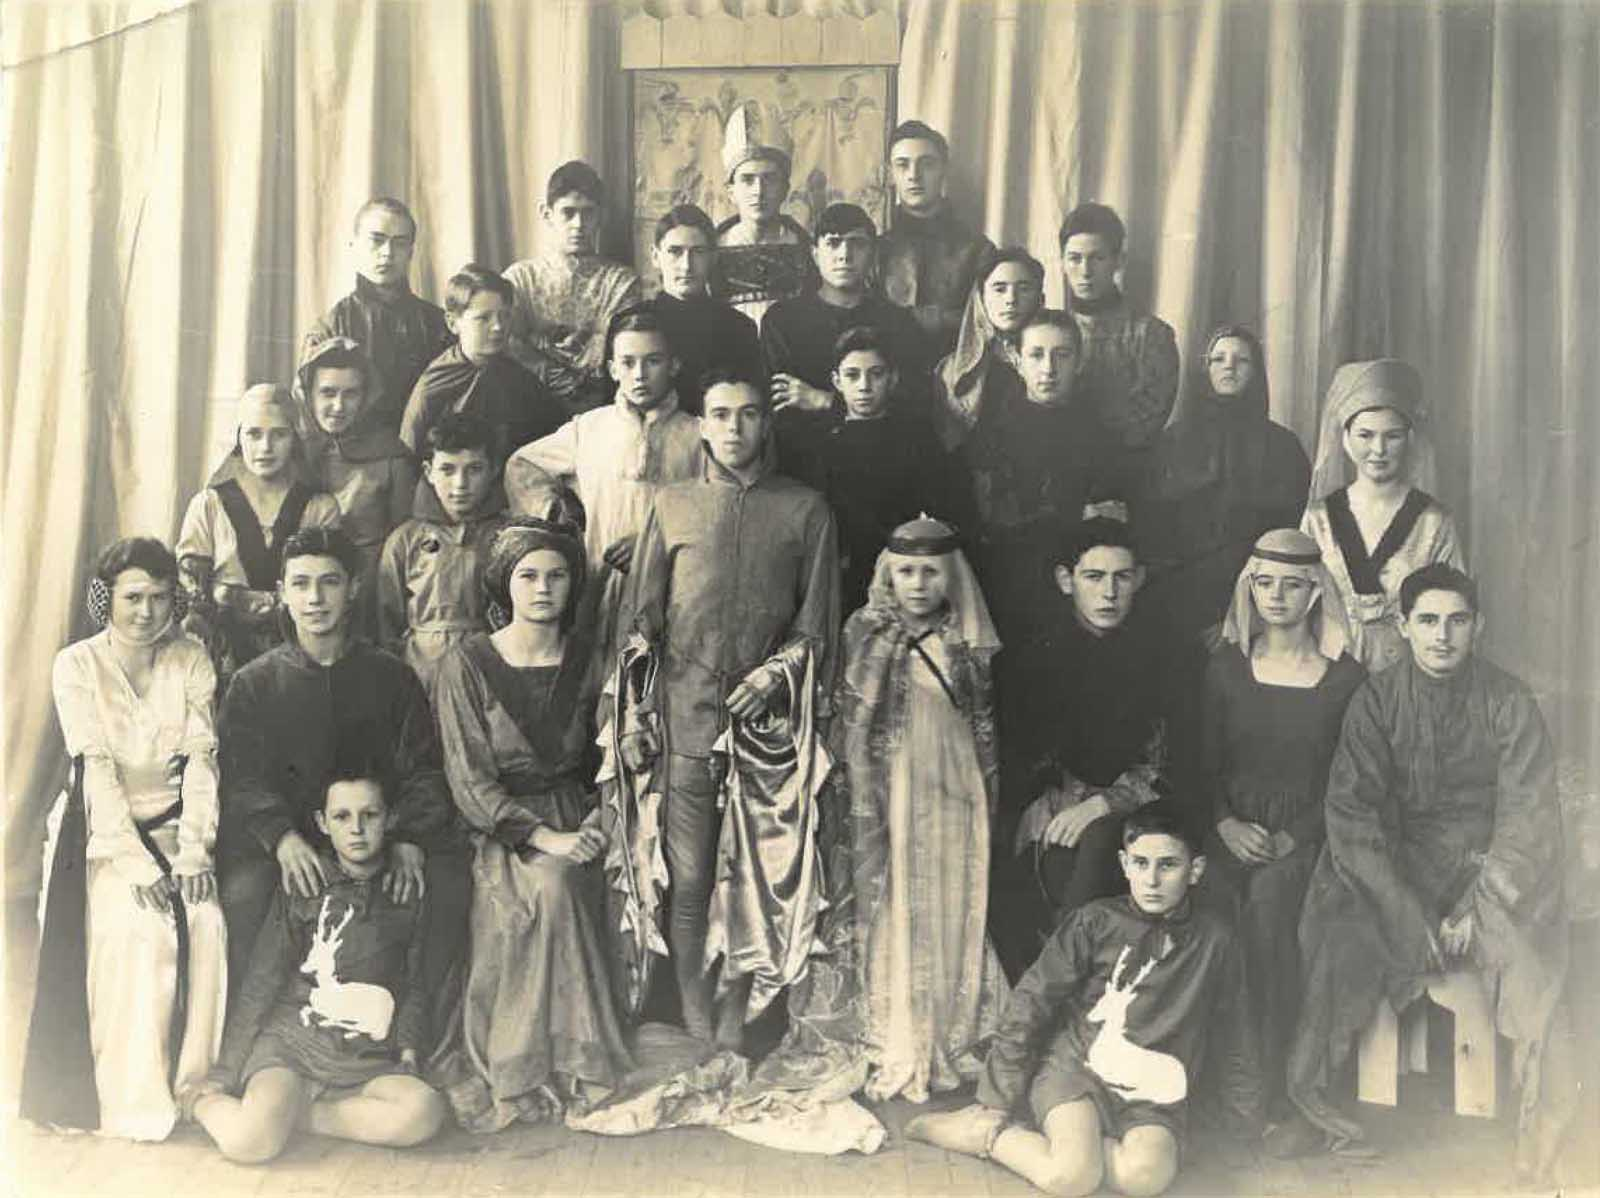 a black and white group photo of the cats of theatre production with women, children and men in medieval attire